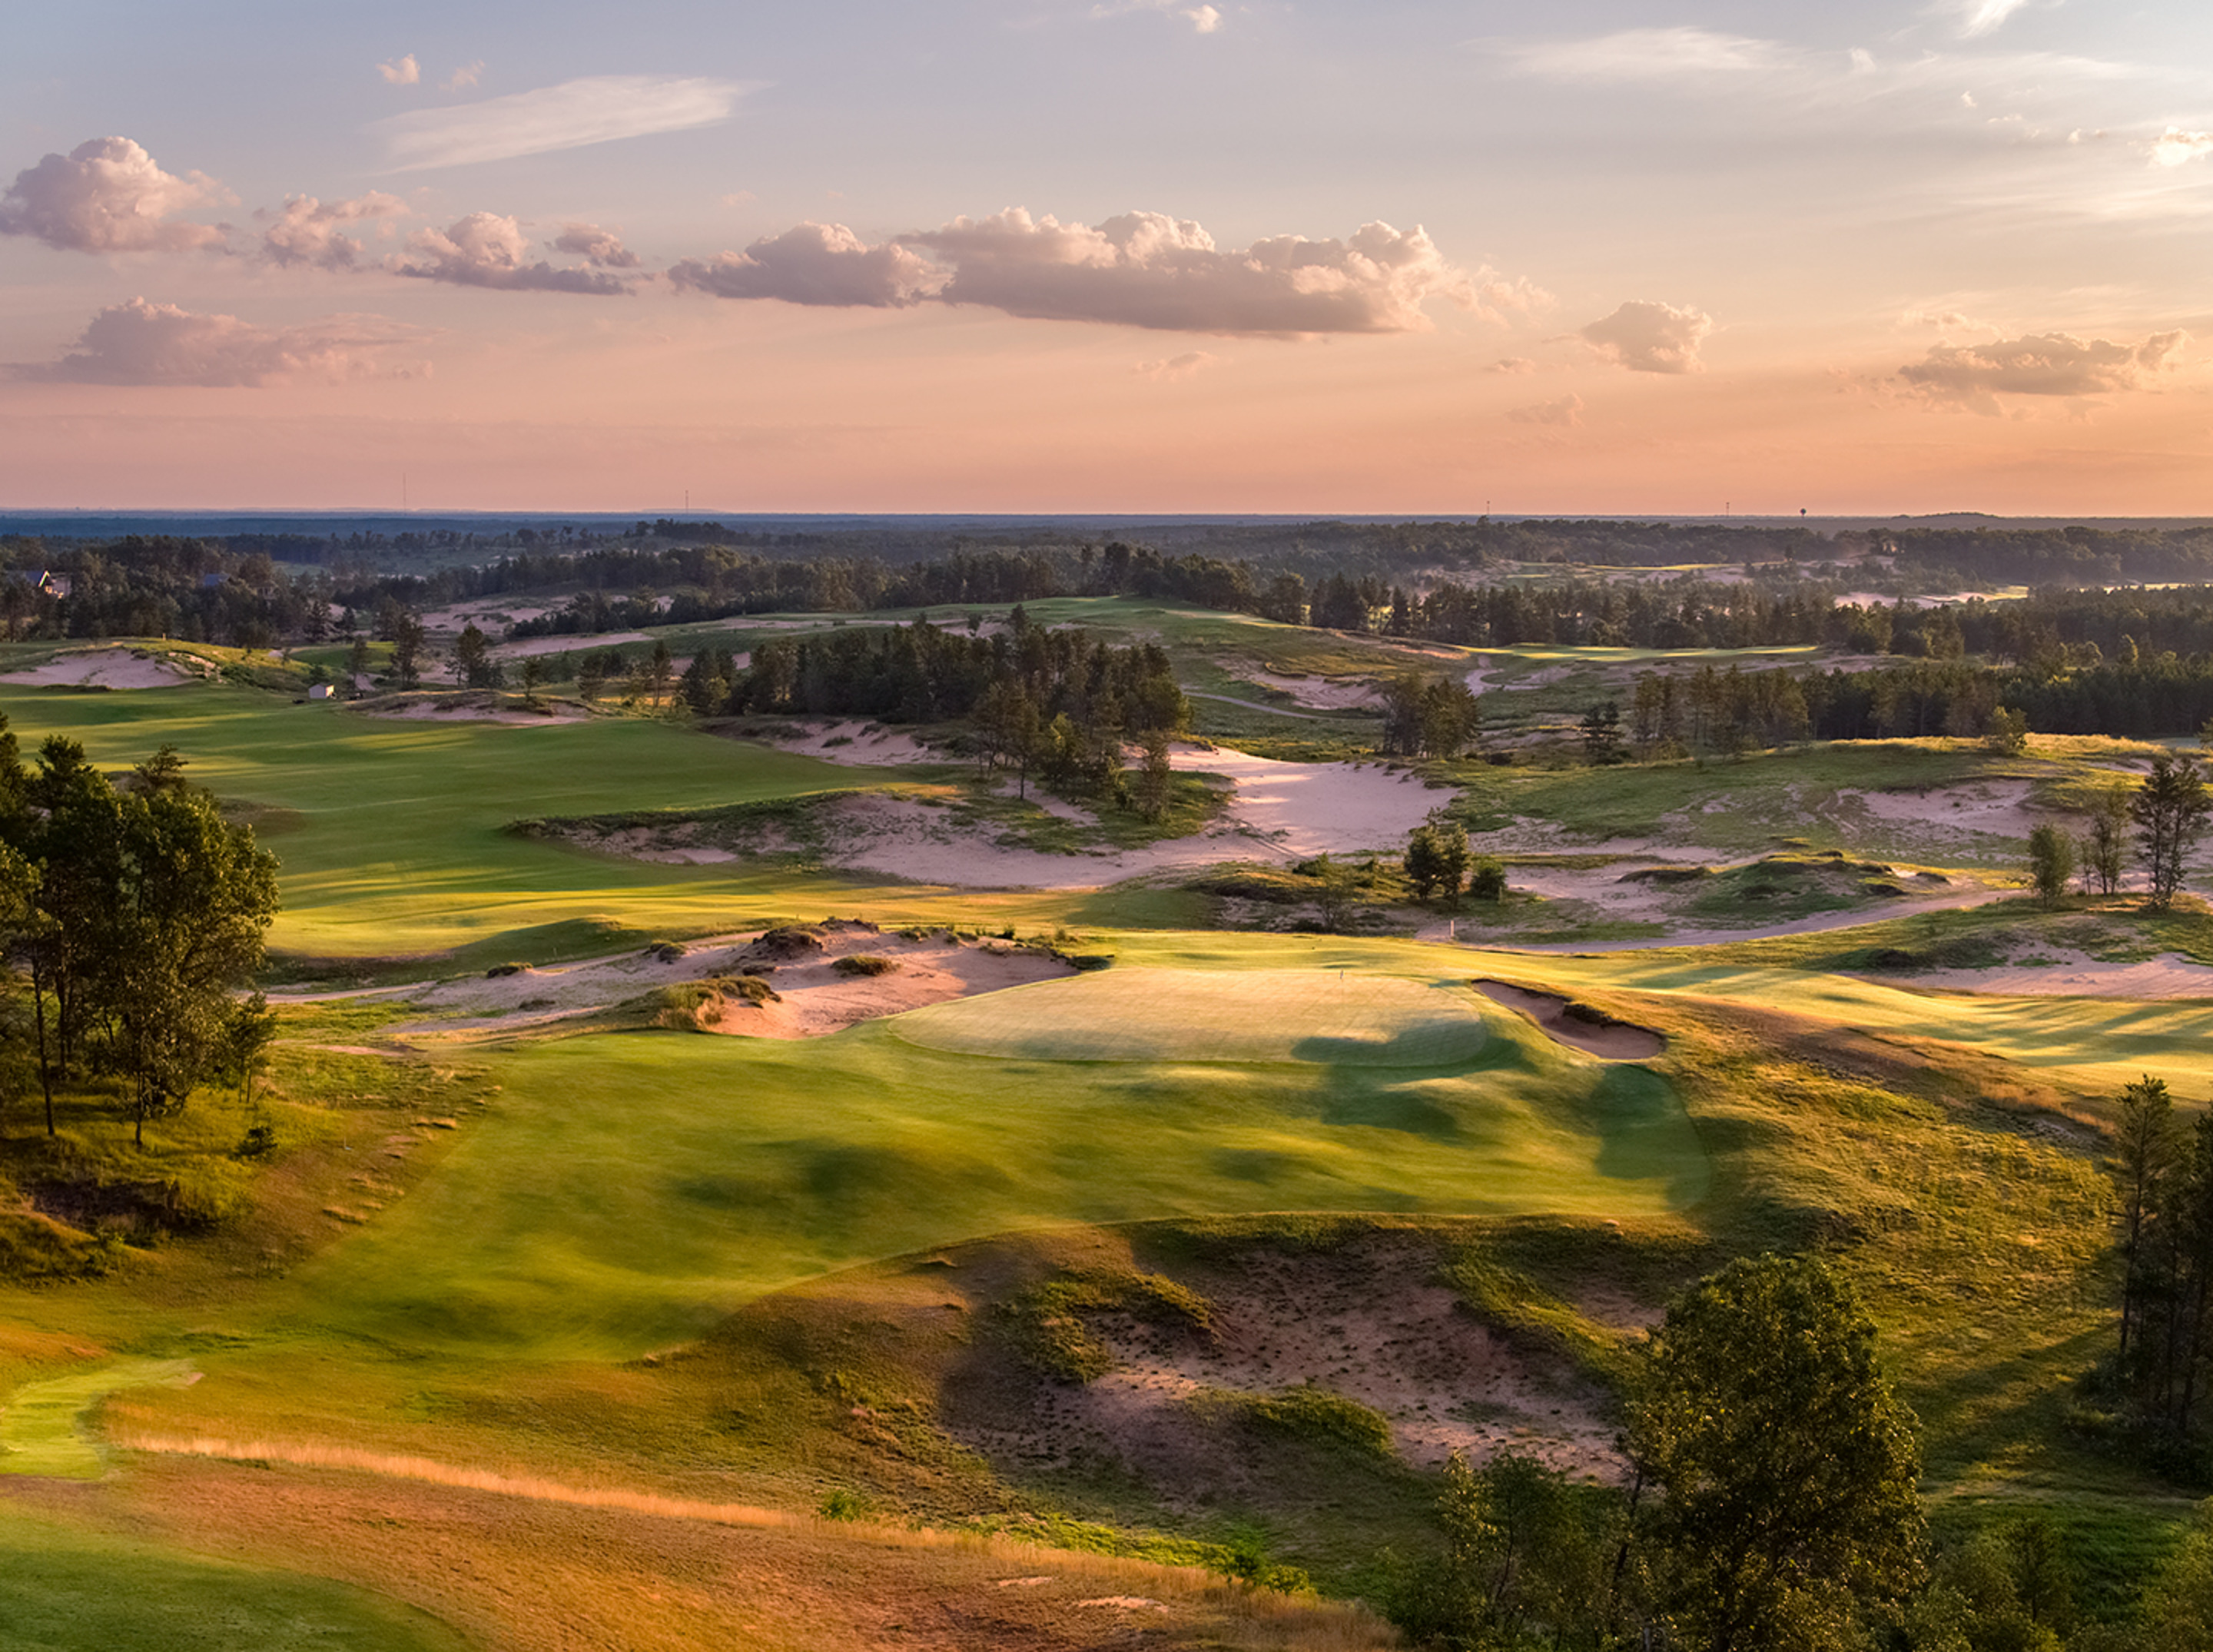 5th Hole, Sand Valley